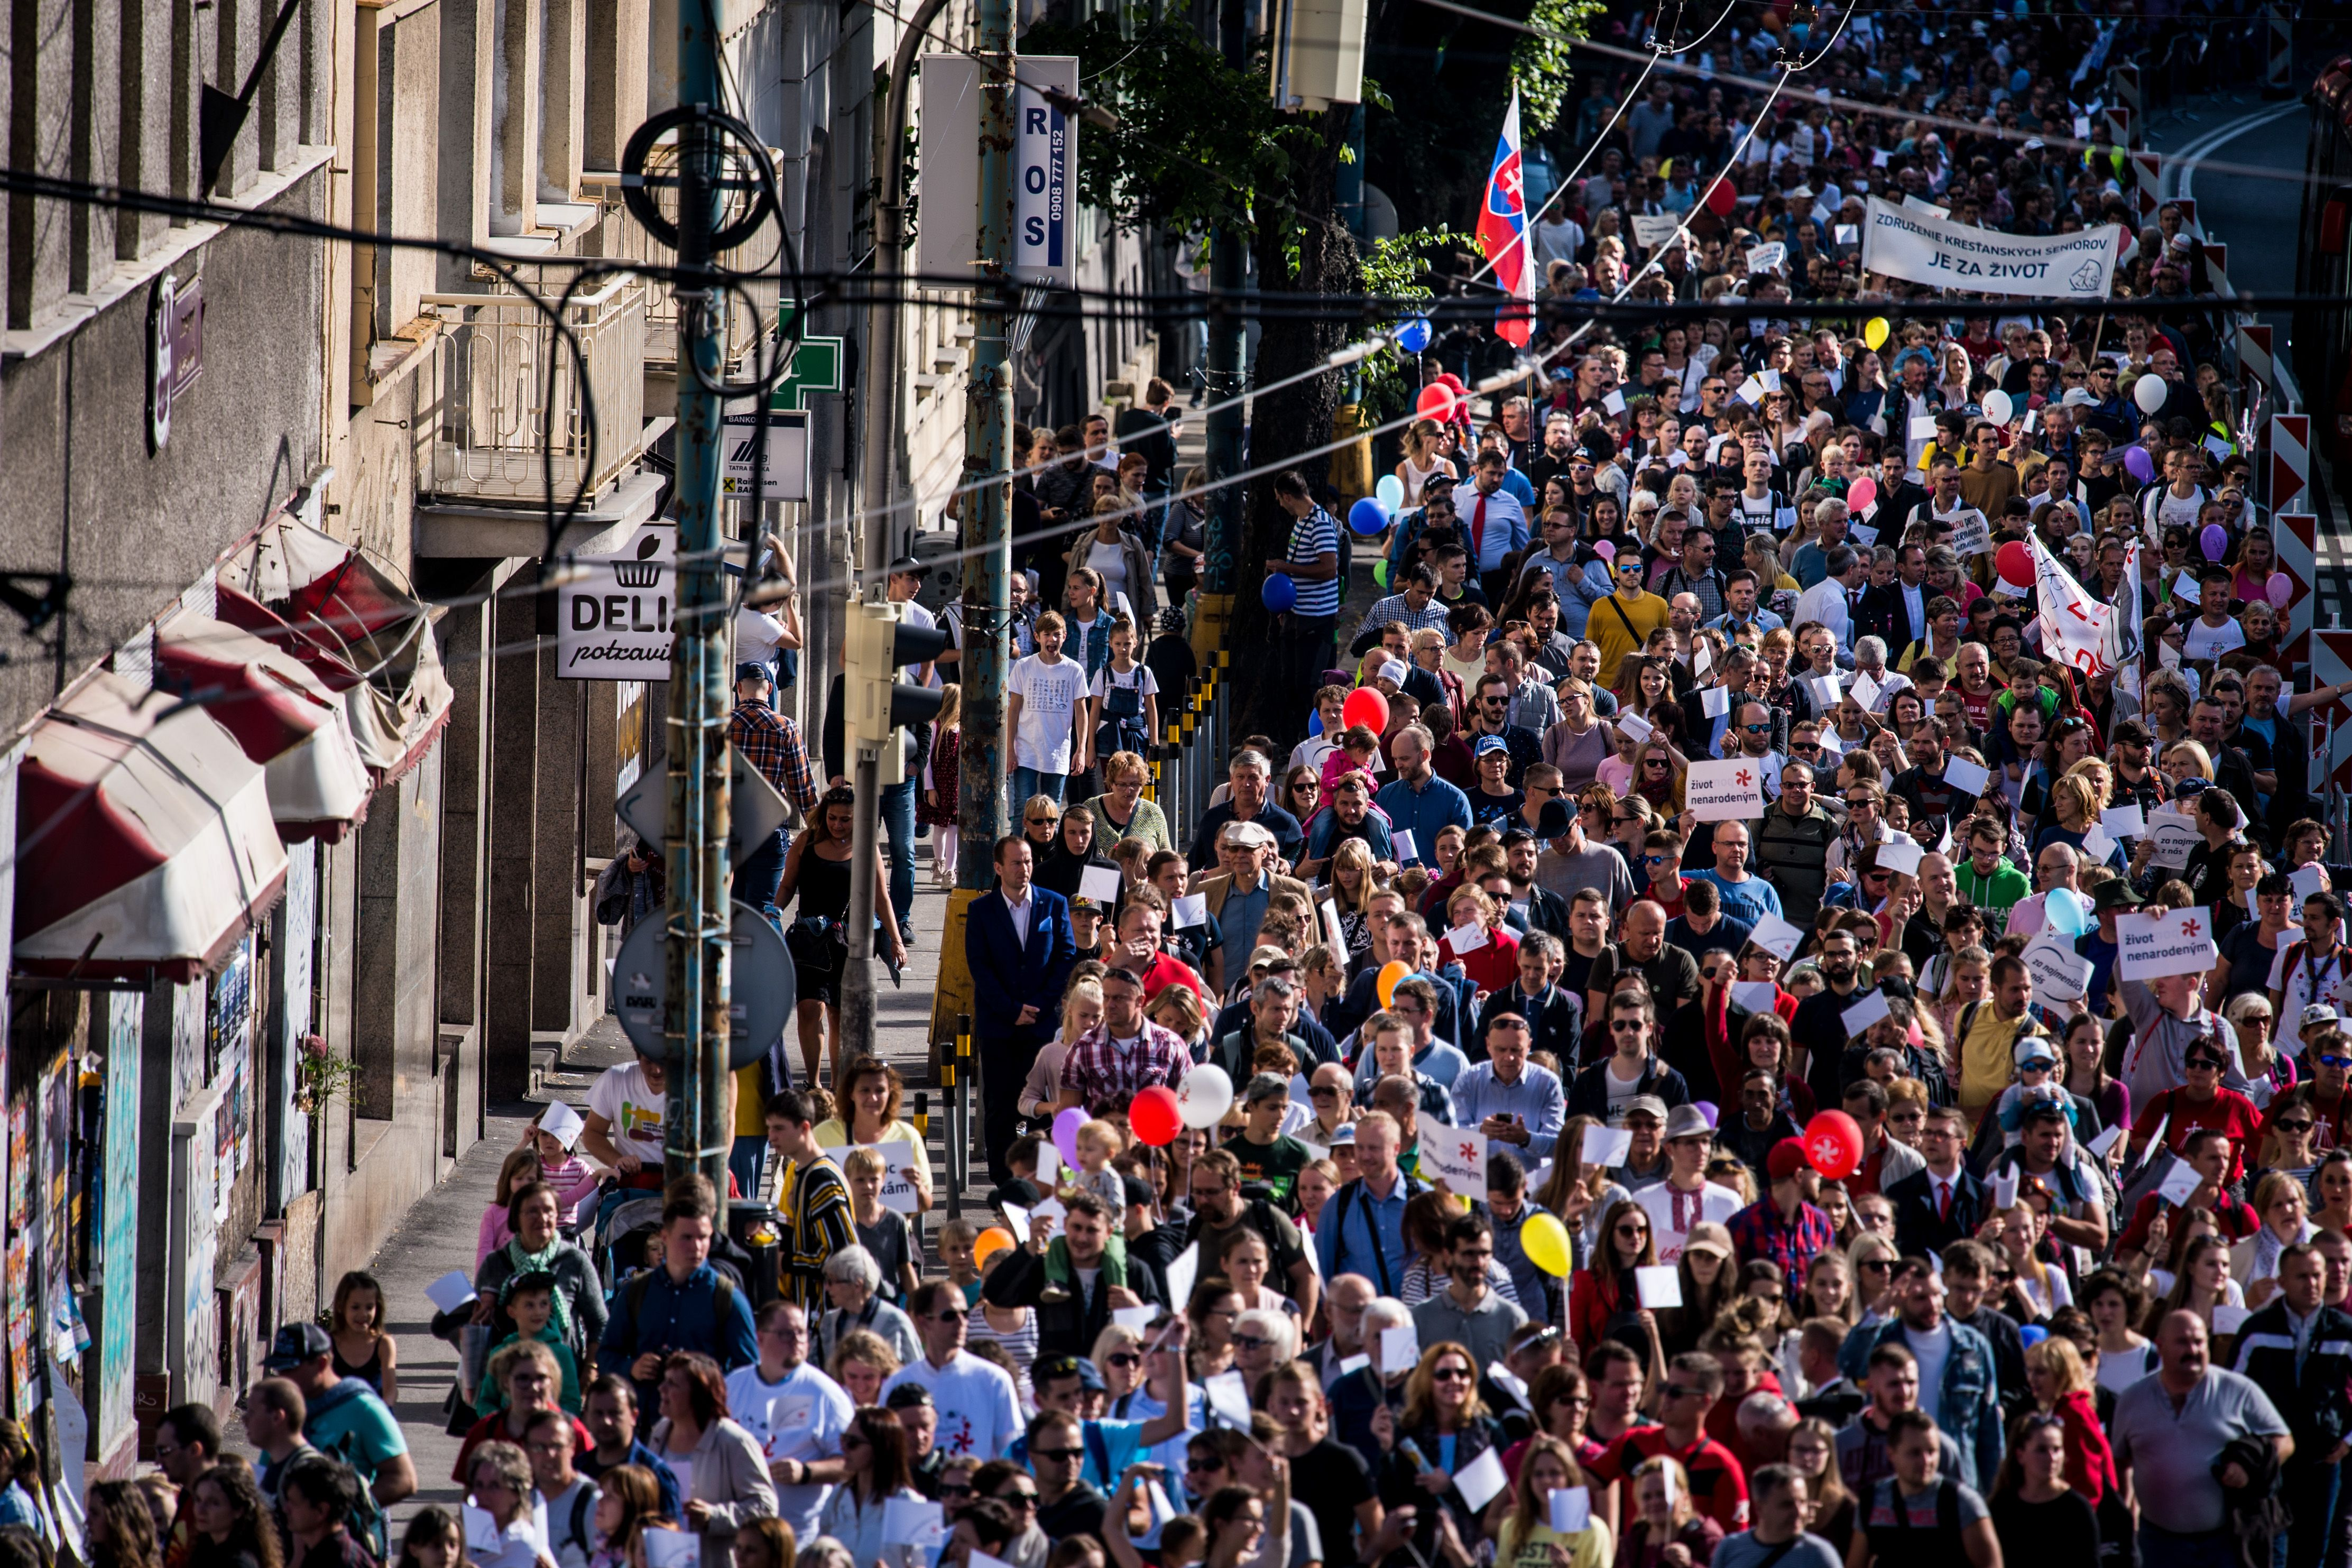 Thousands of participants march during an anti-abortion protest titled